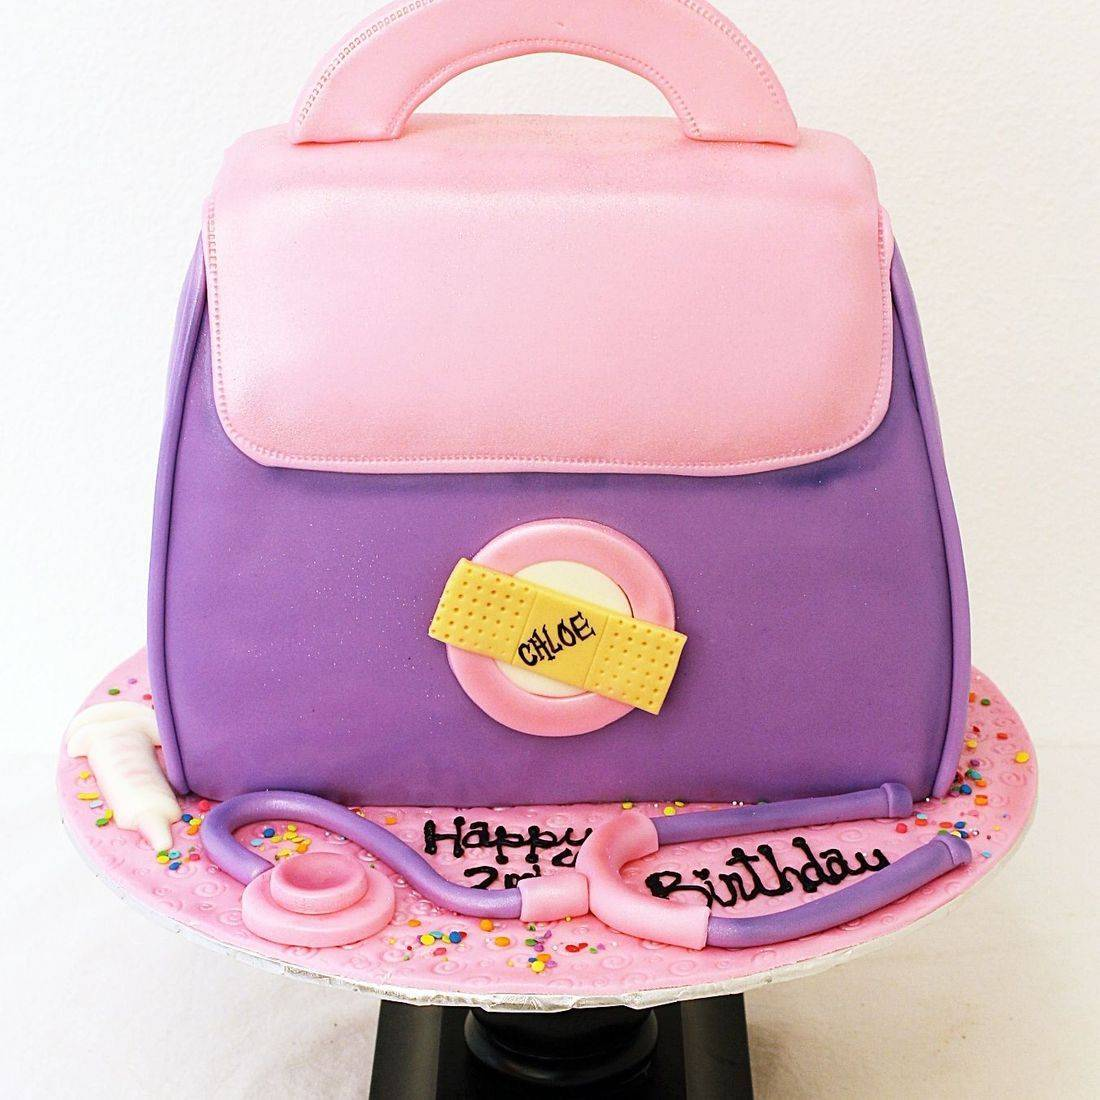 Doc Mc Stuffin Bag Cake Dimensional Cake Milwaukee